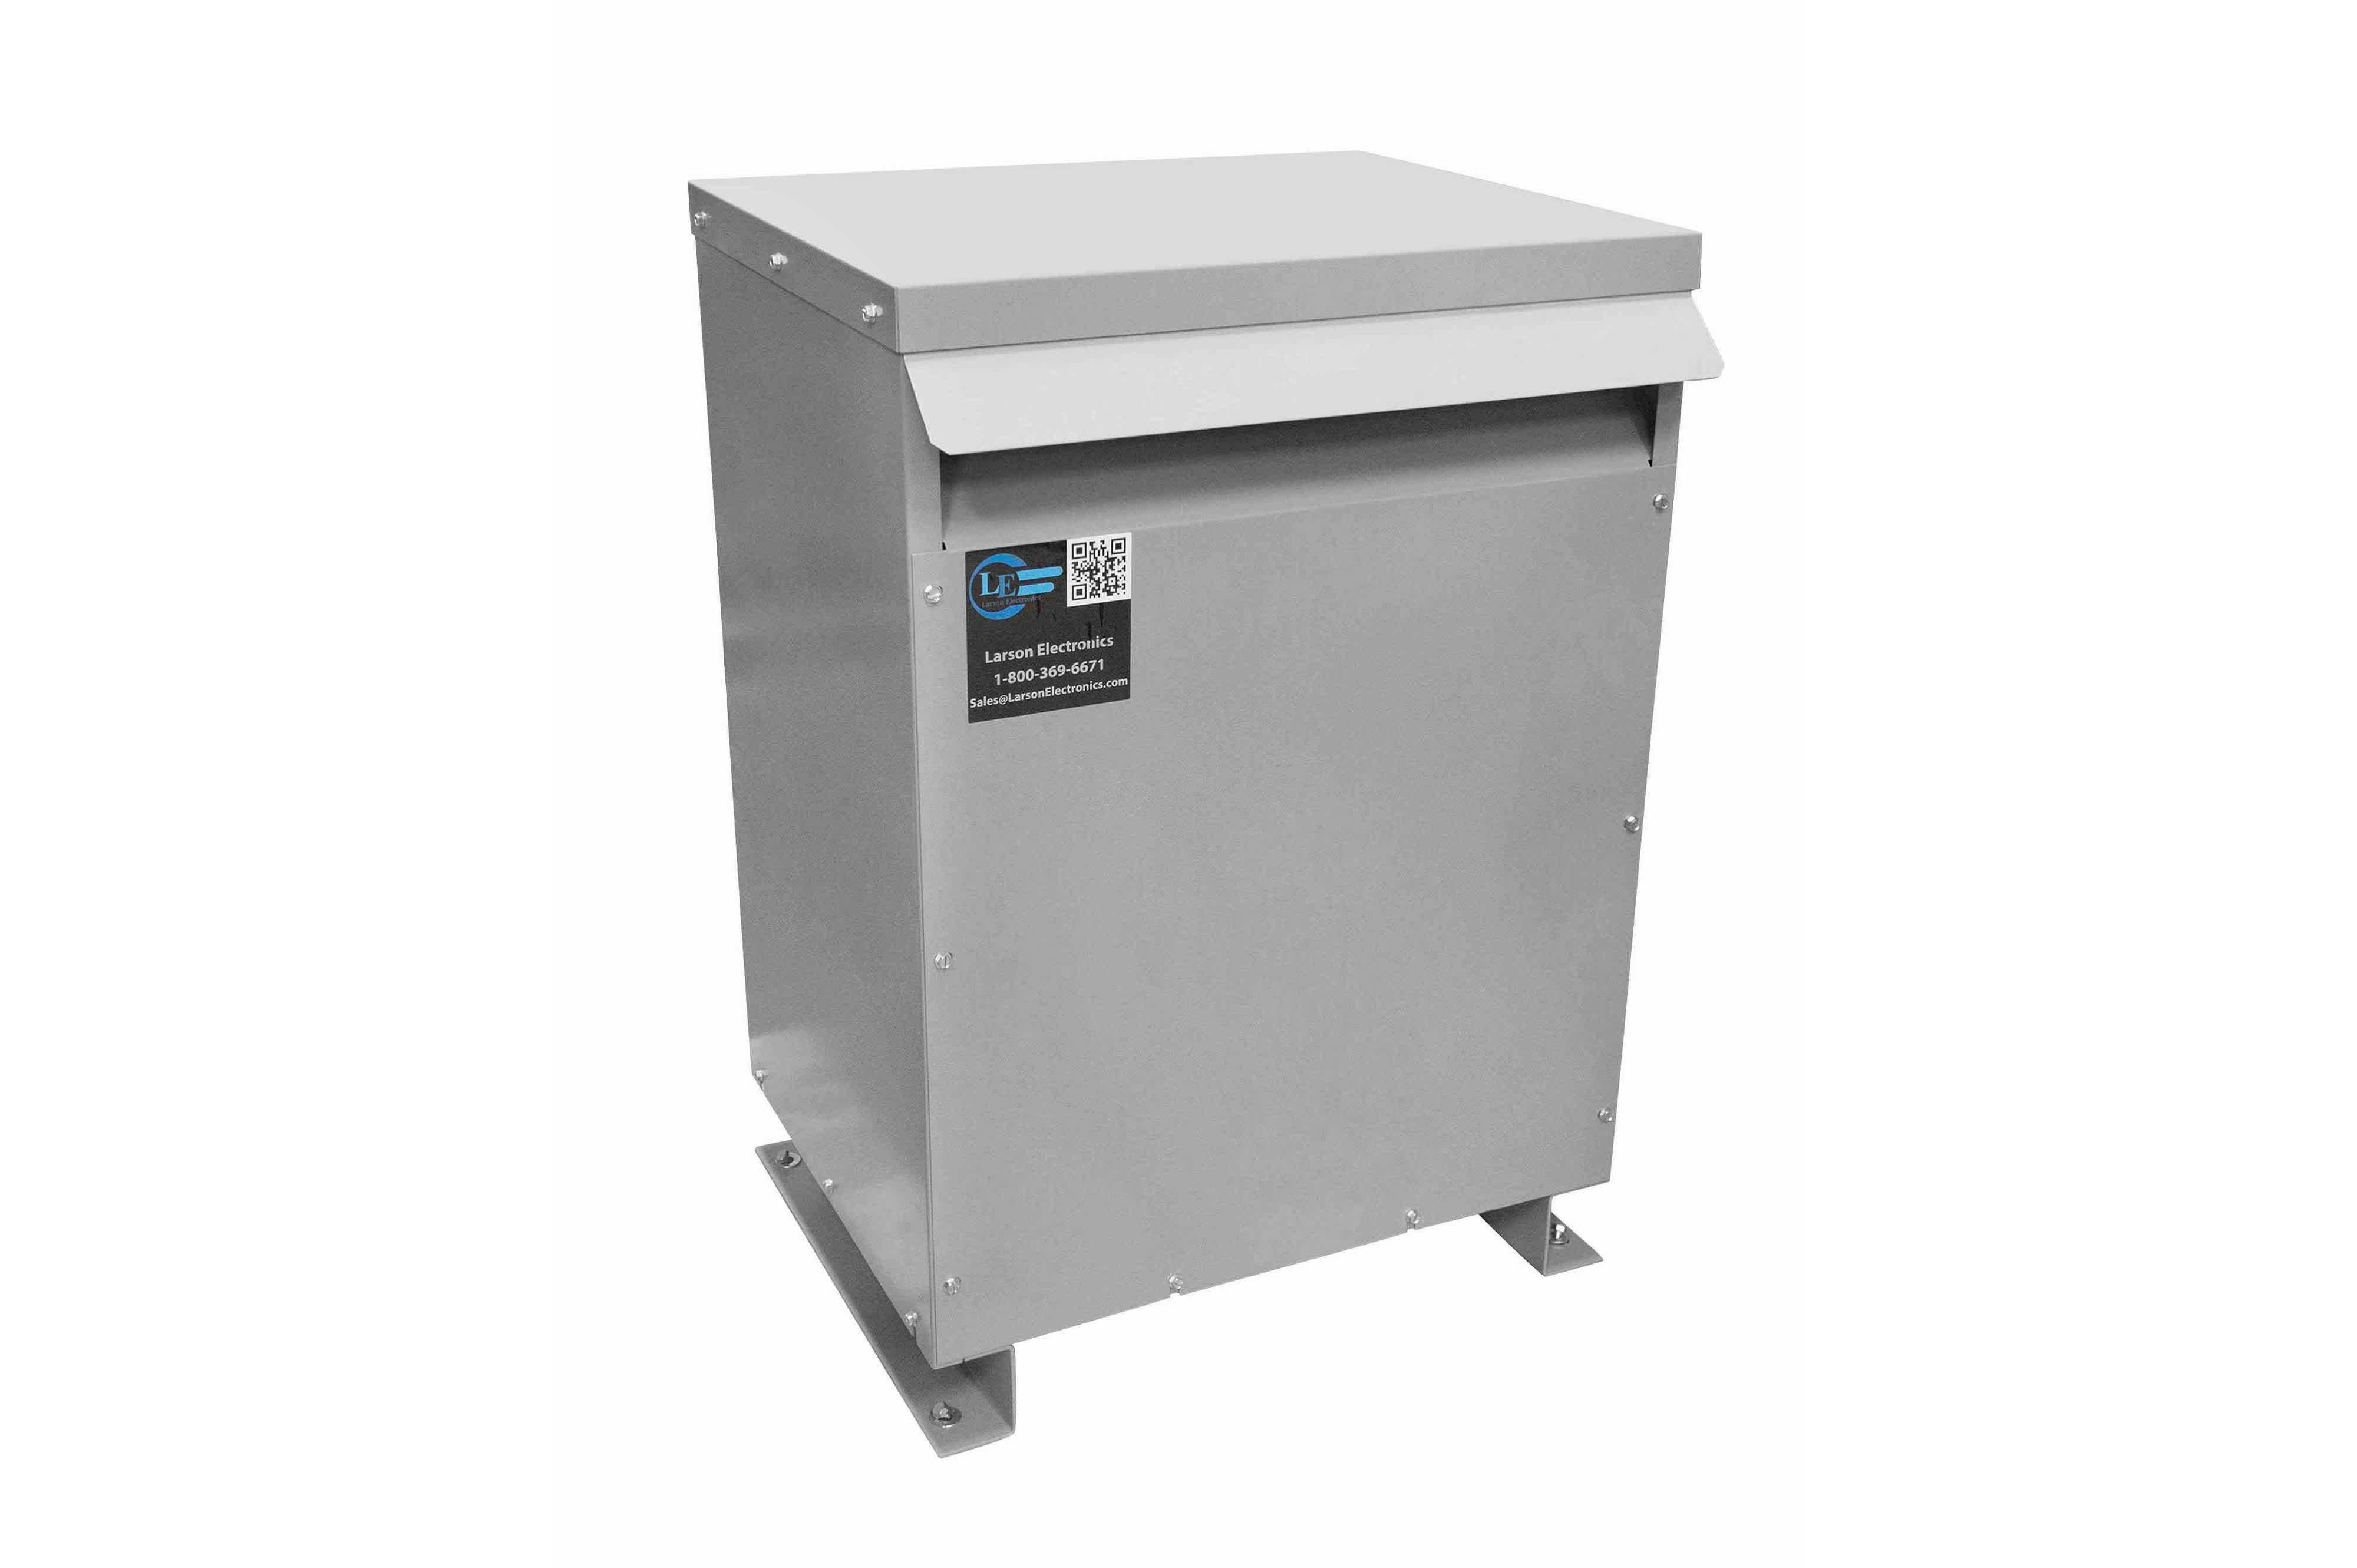 75 kVA 3PH DOE Transformer, 415V Delta Primary, 208Y/120 Wye-N Secondary, N3R, Ventilated, 60 Hz